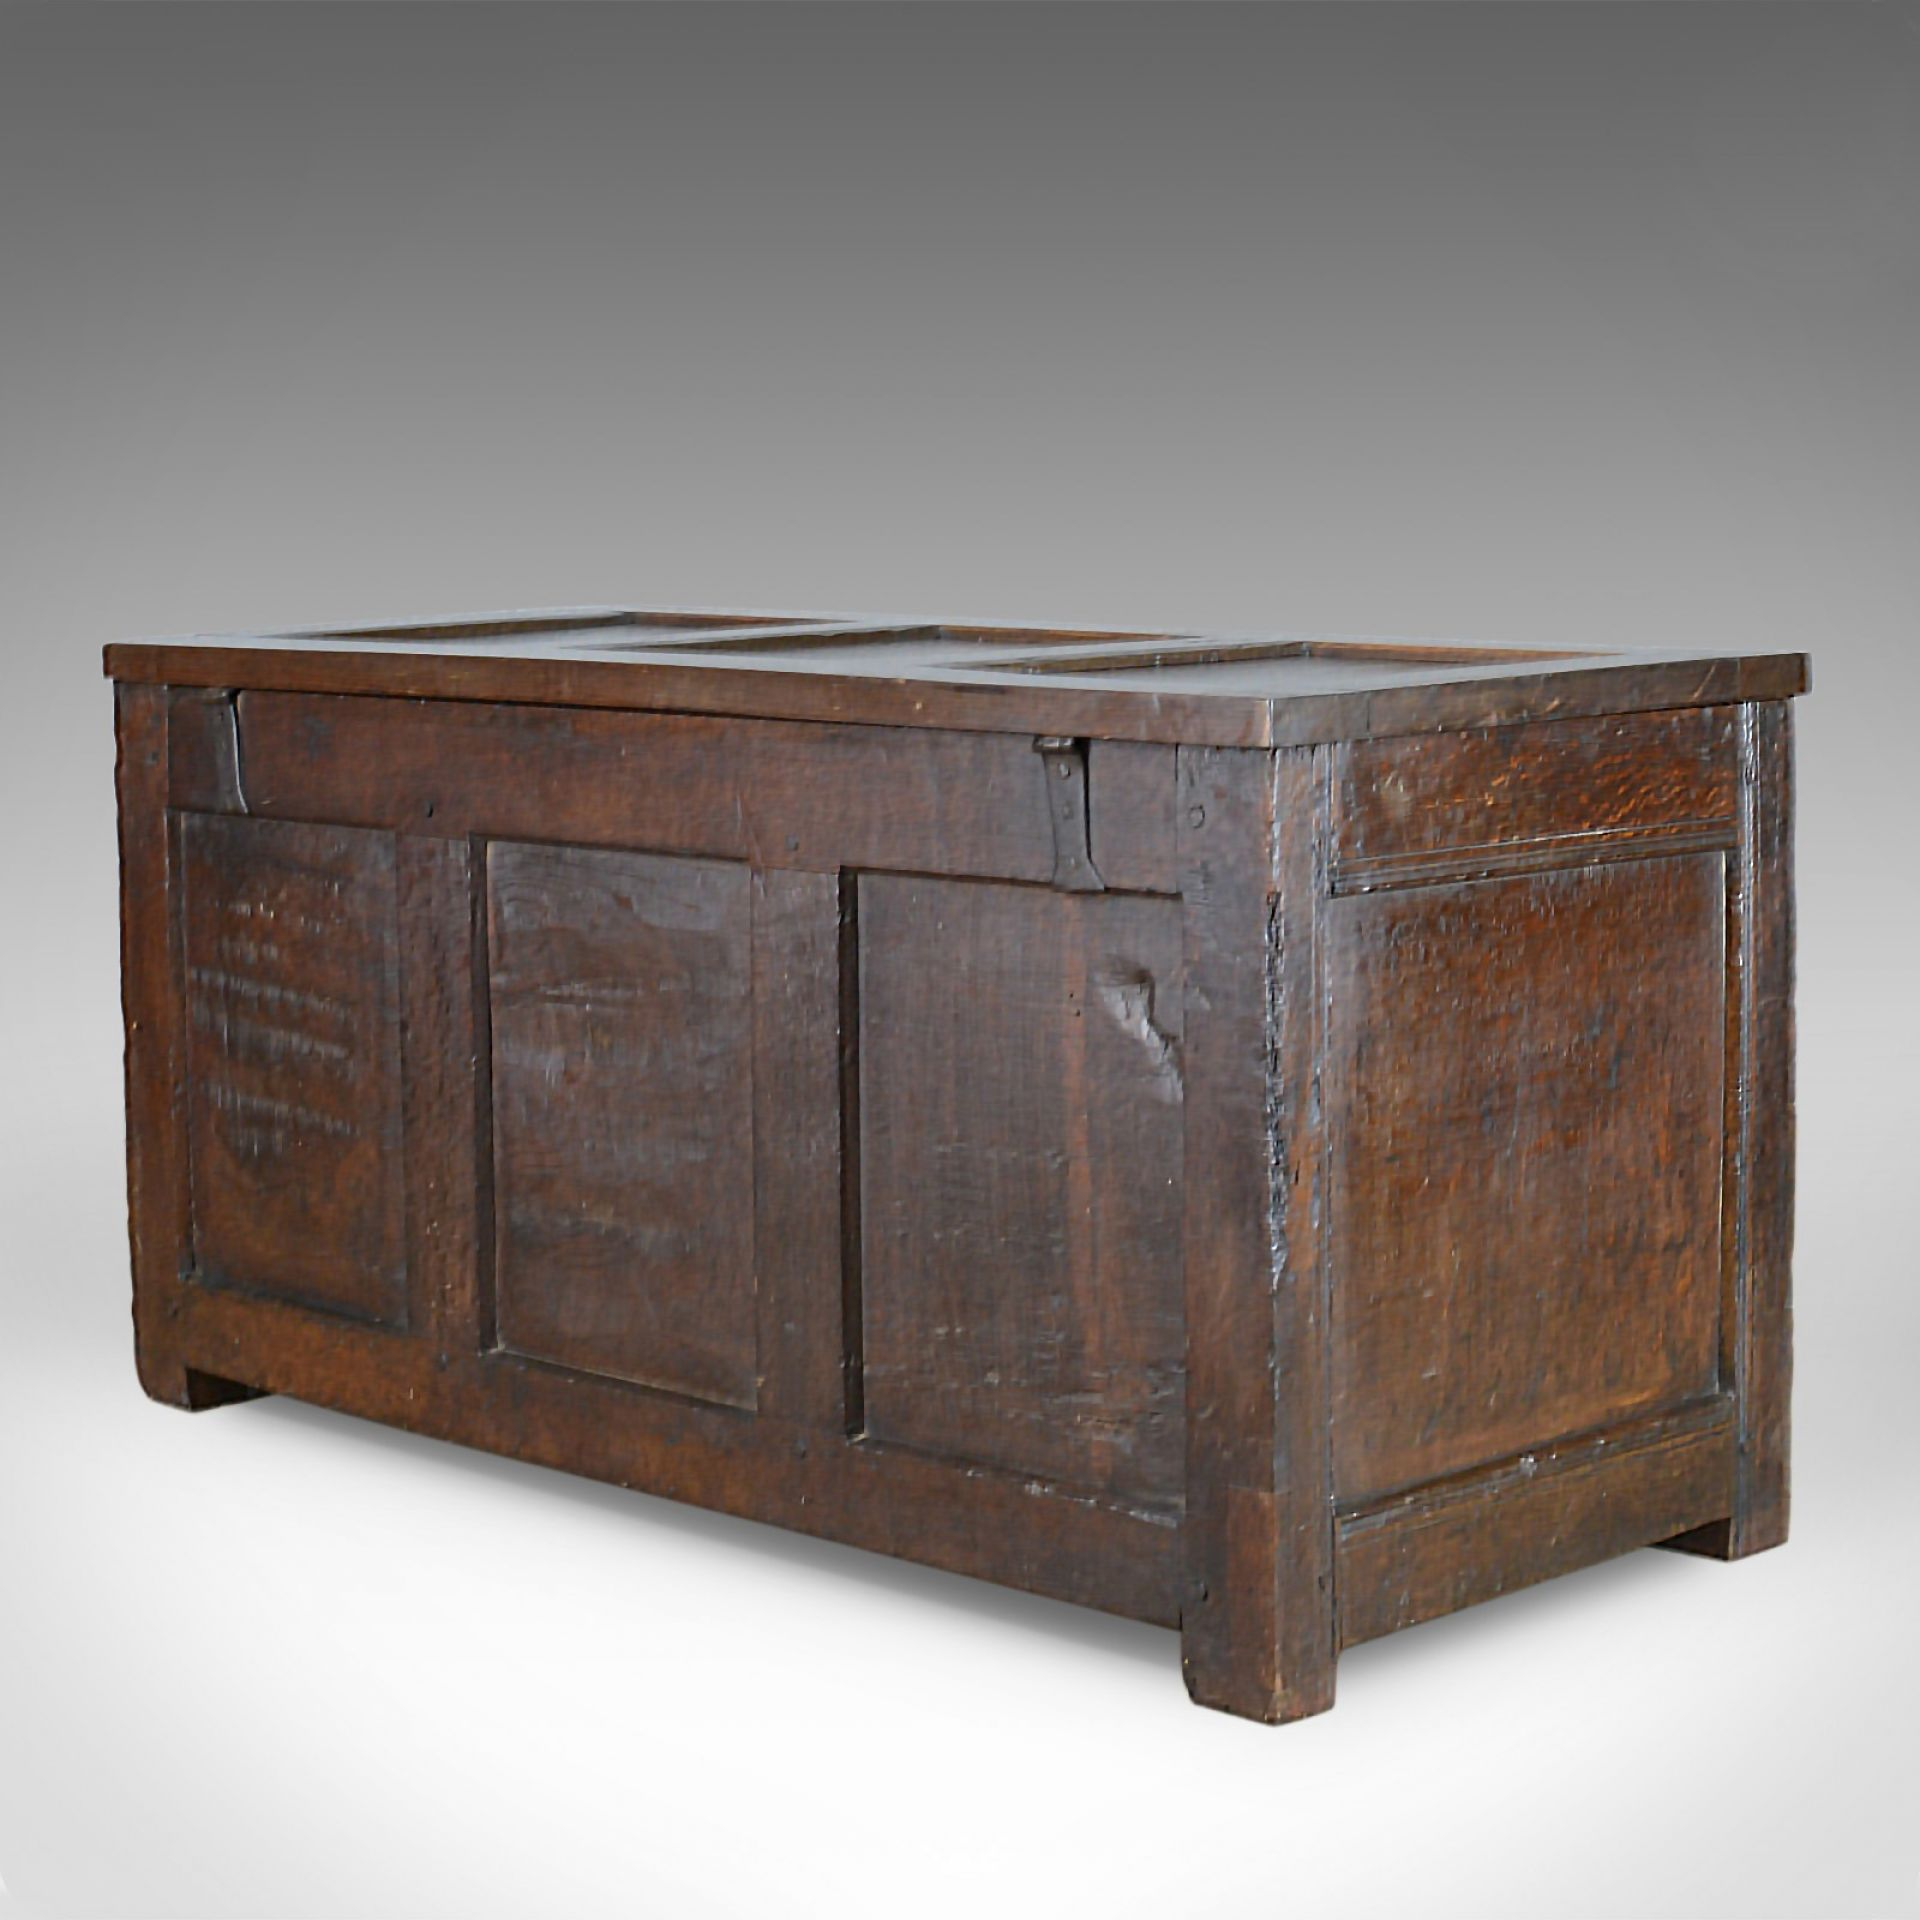 Antique Coffer, Oak, Joined Chest, Three Panel Trunk, Early 18th Century c.1700